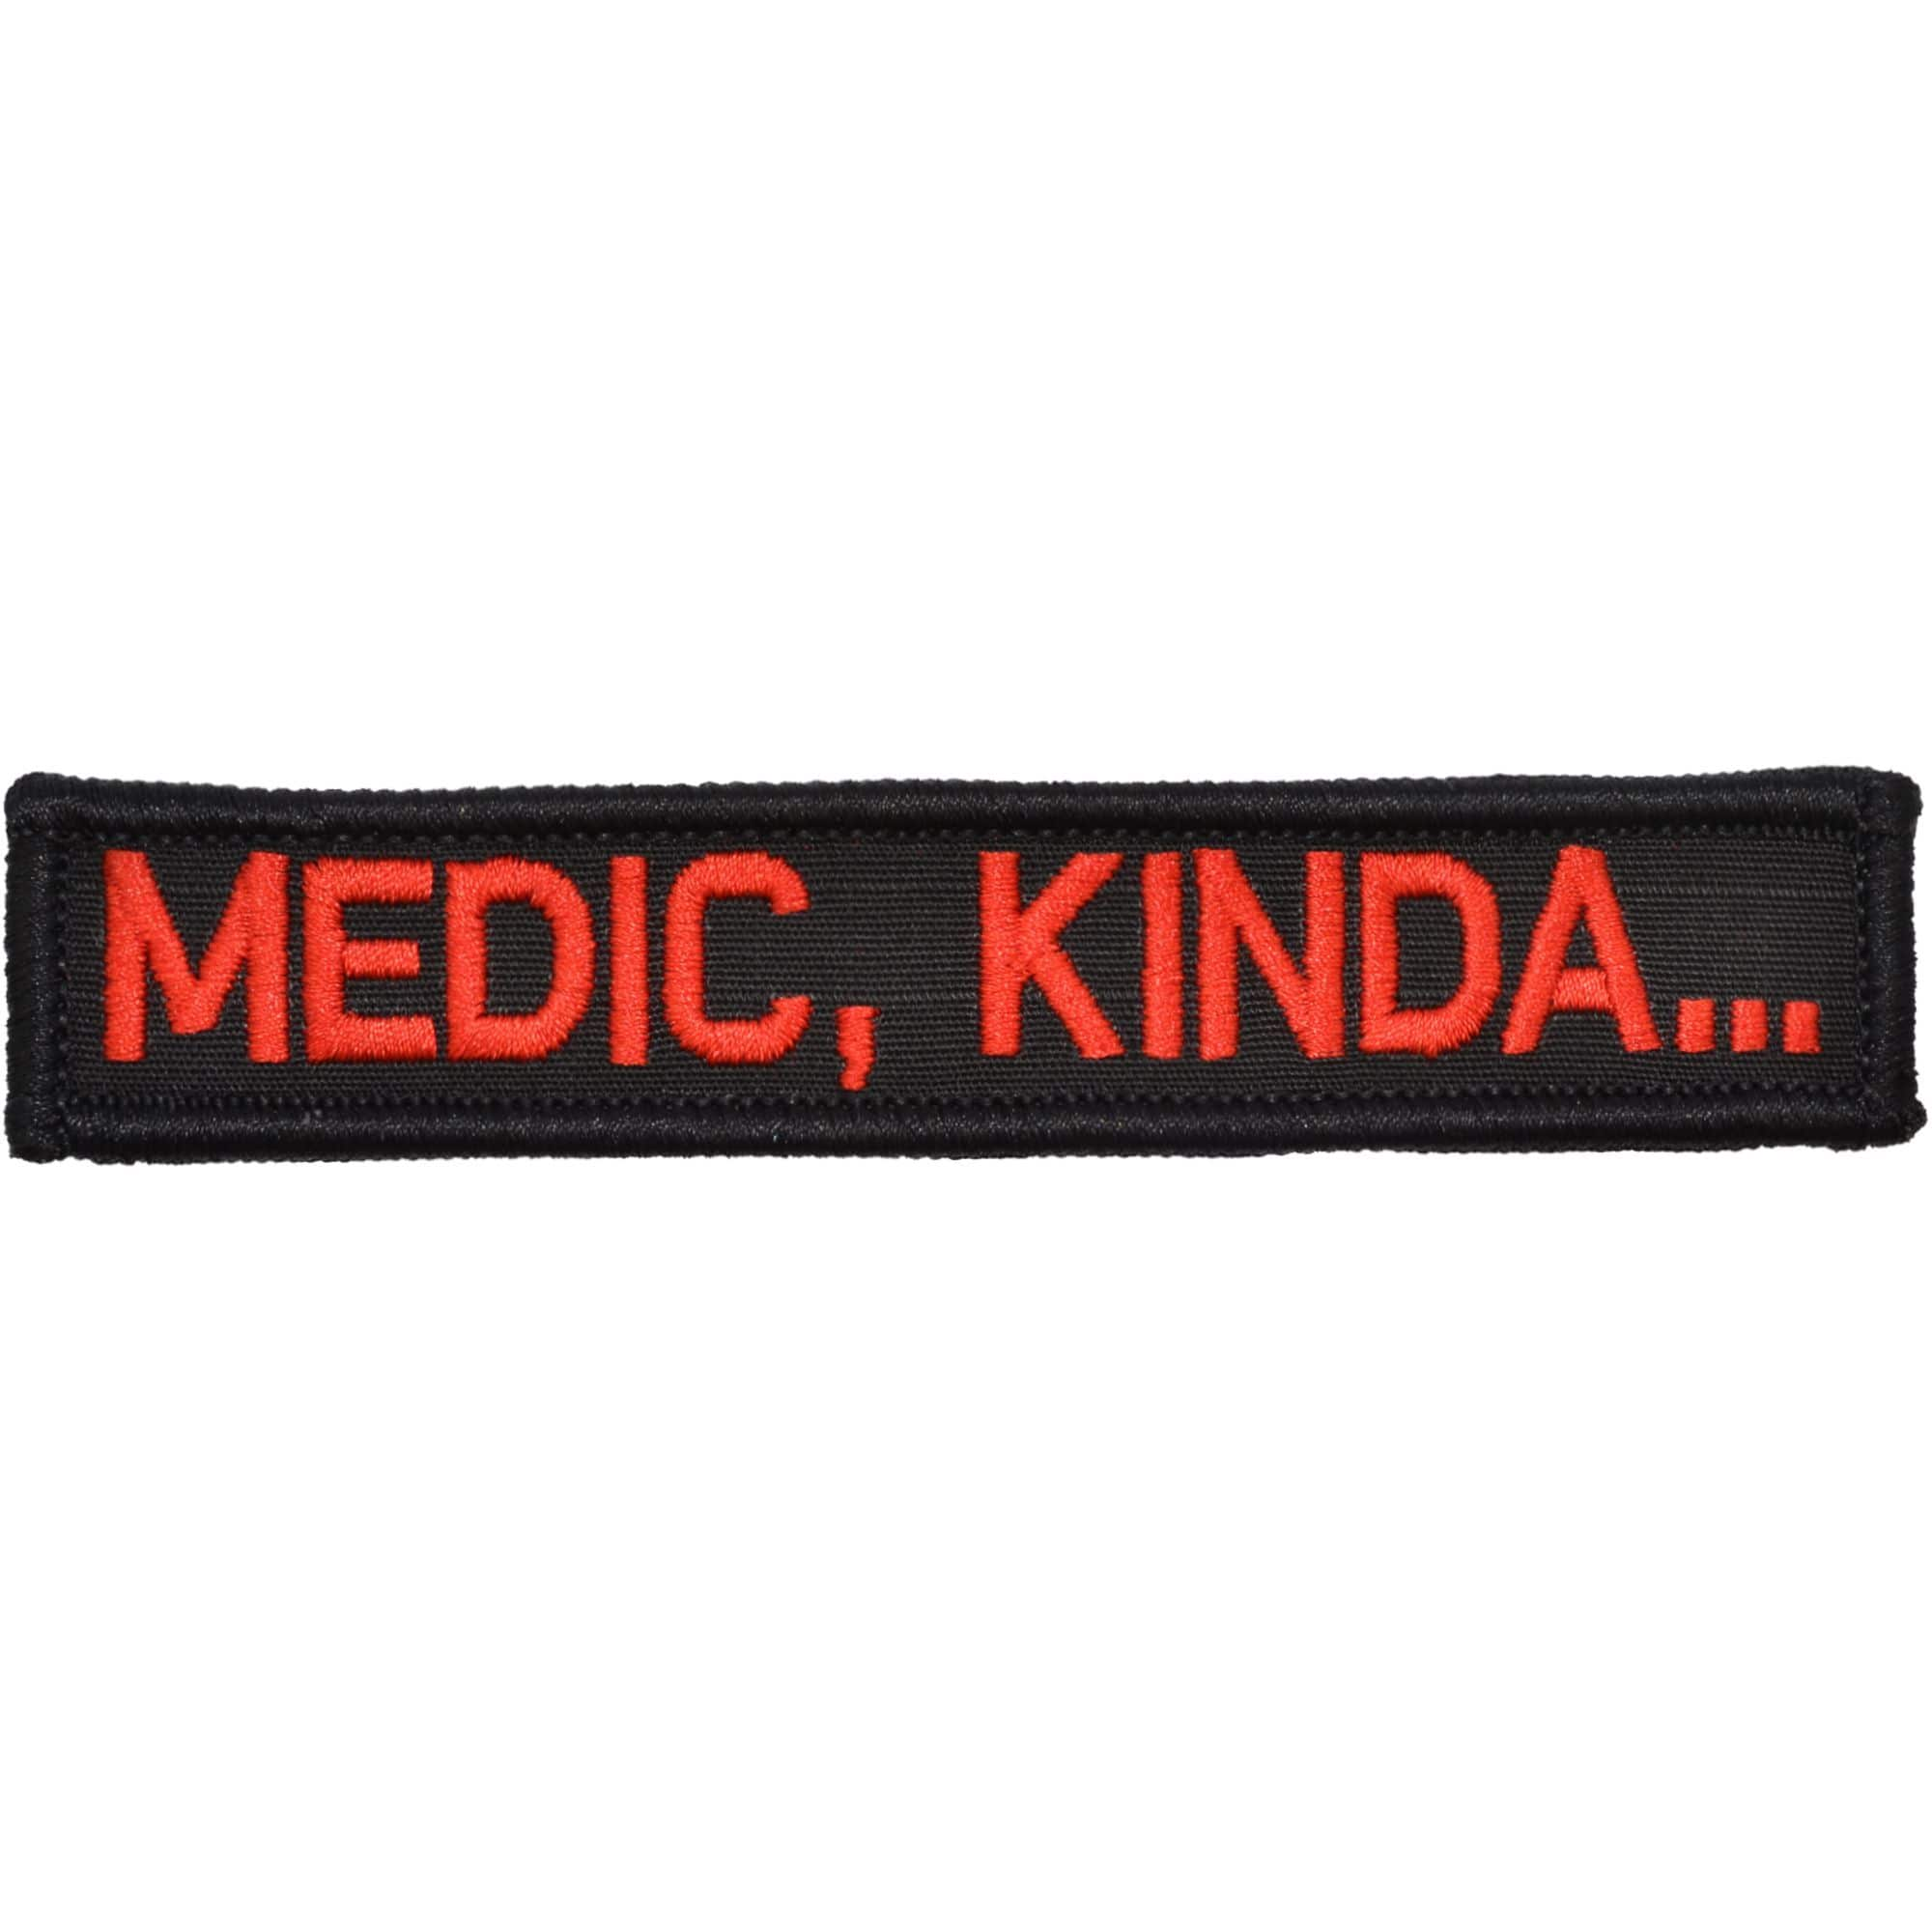 Tactical Gear Junkie Patches Black w/ Red Medic, Kinda... - 1x5 Patch